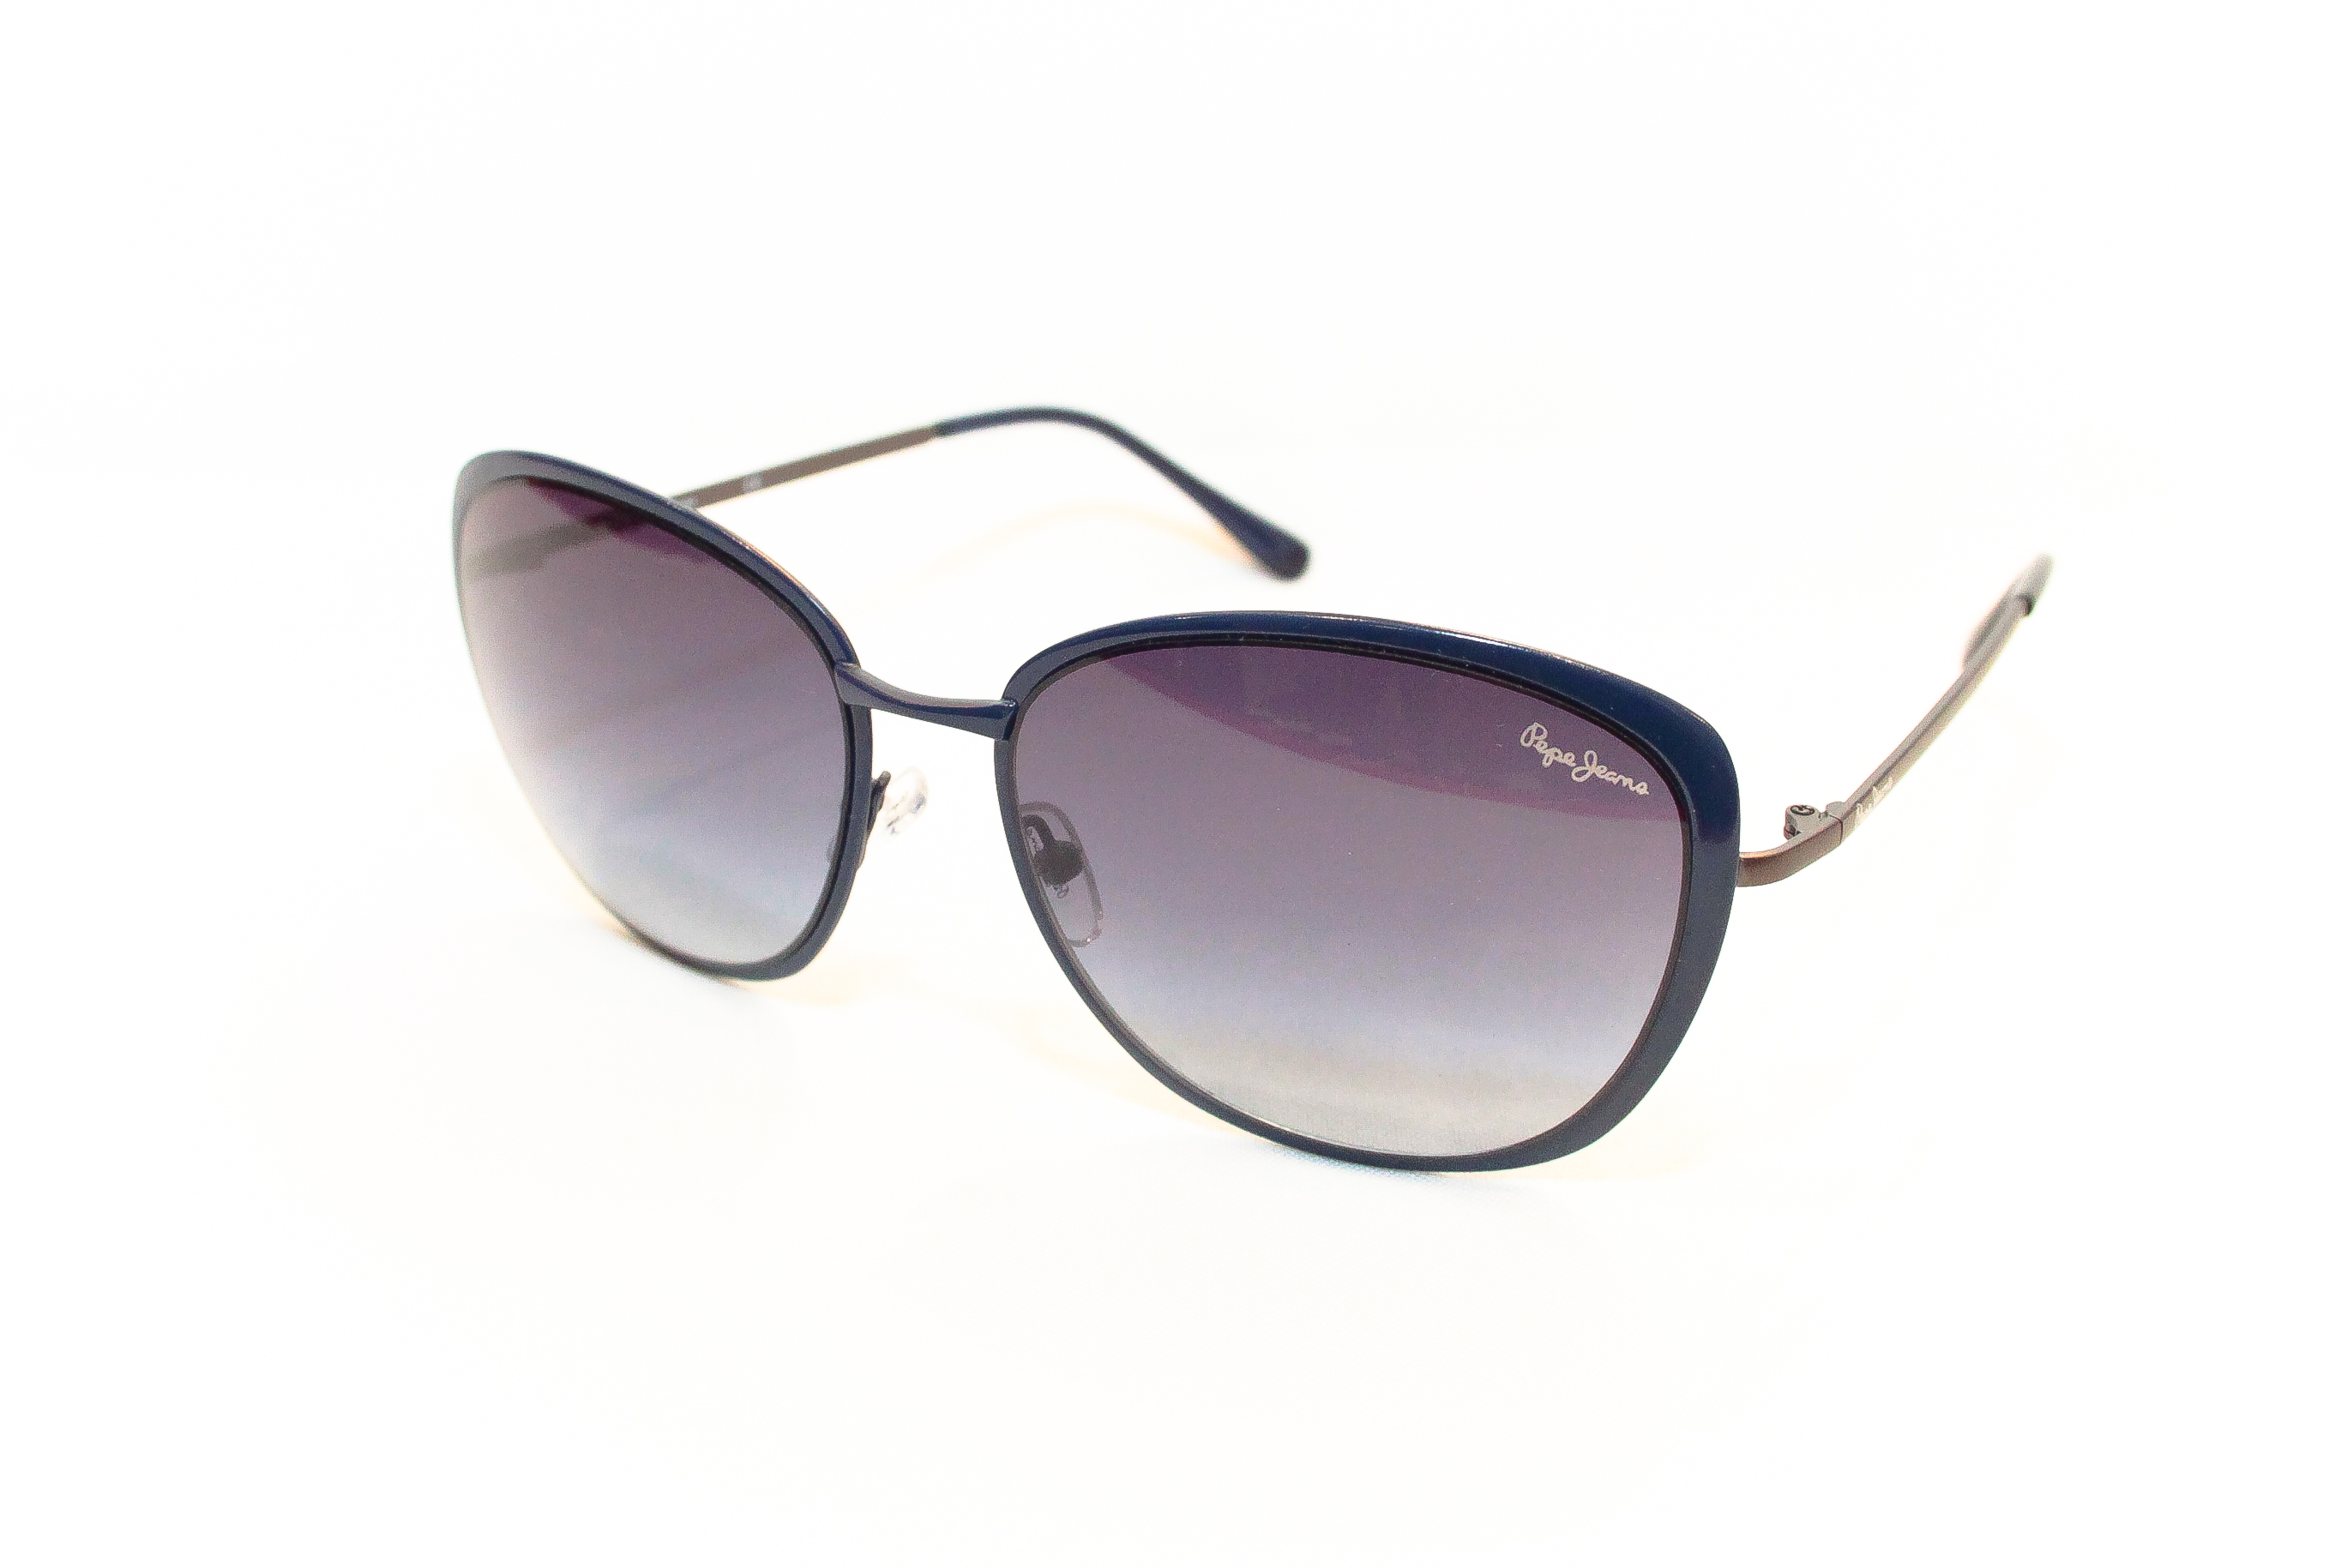 PEPE JEANS 5105 c.4